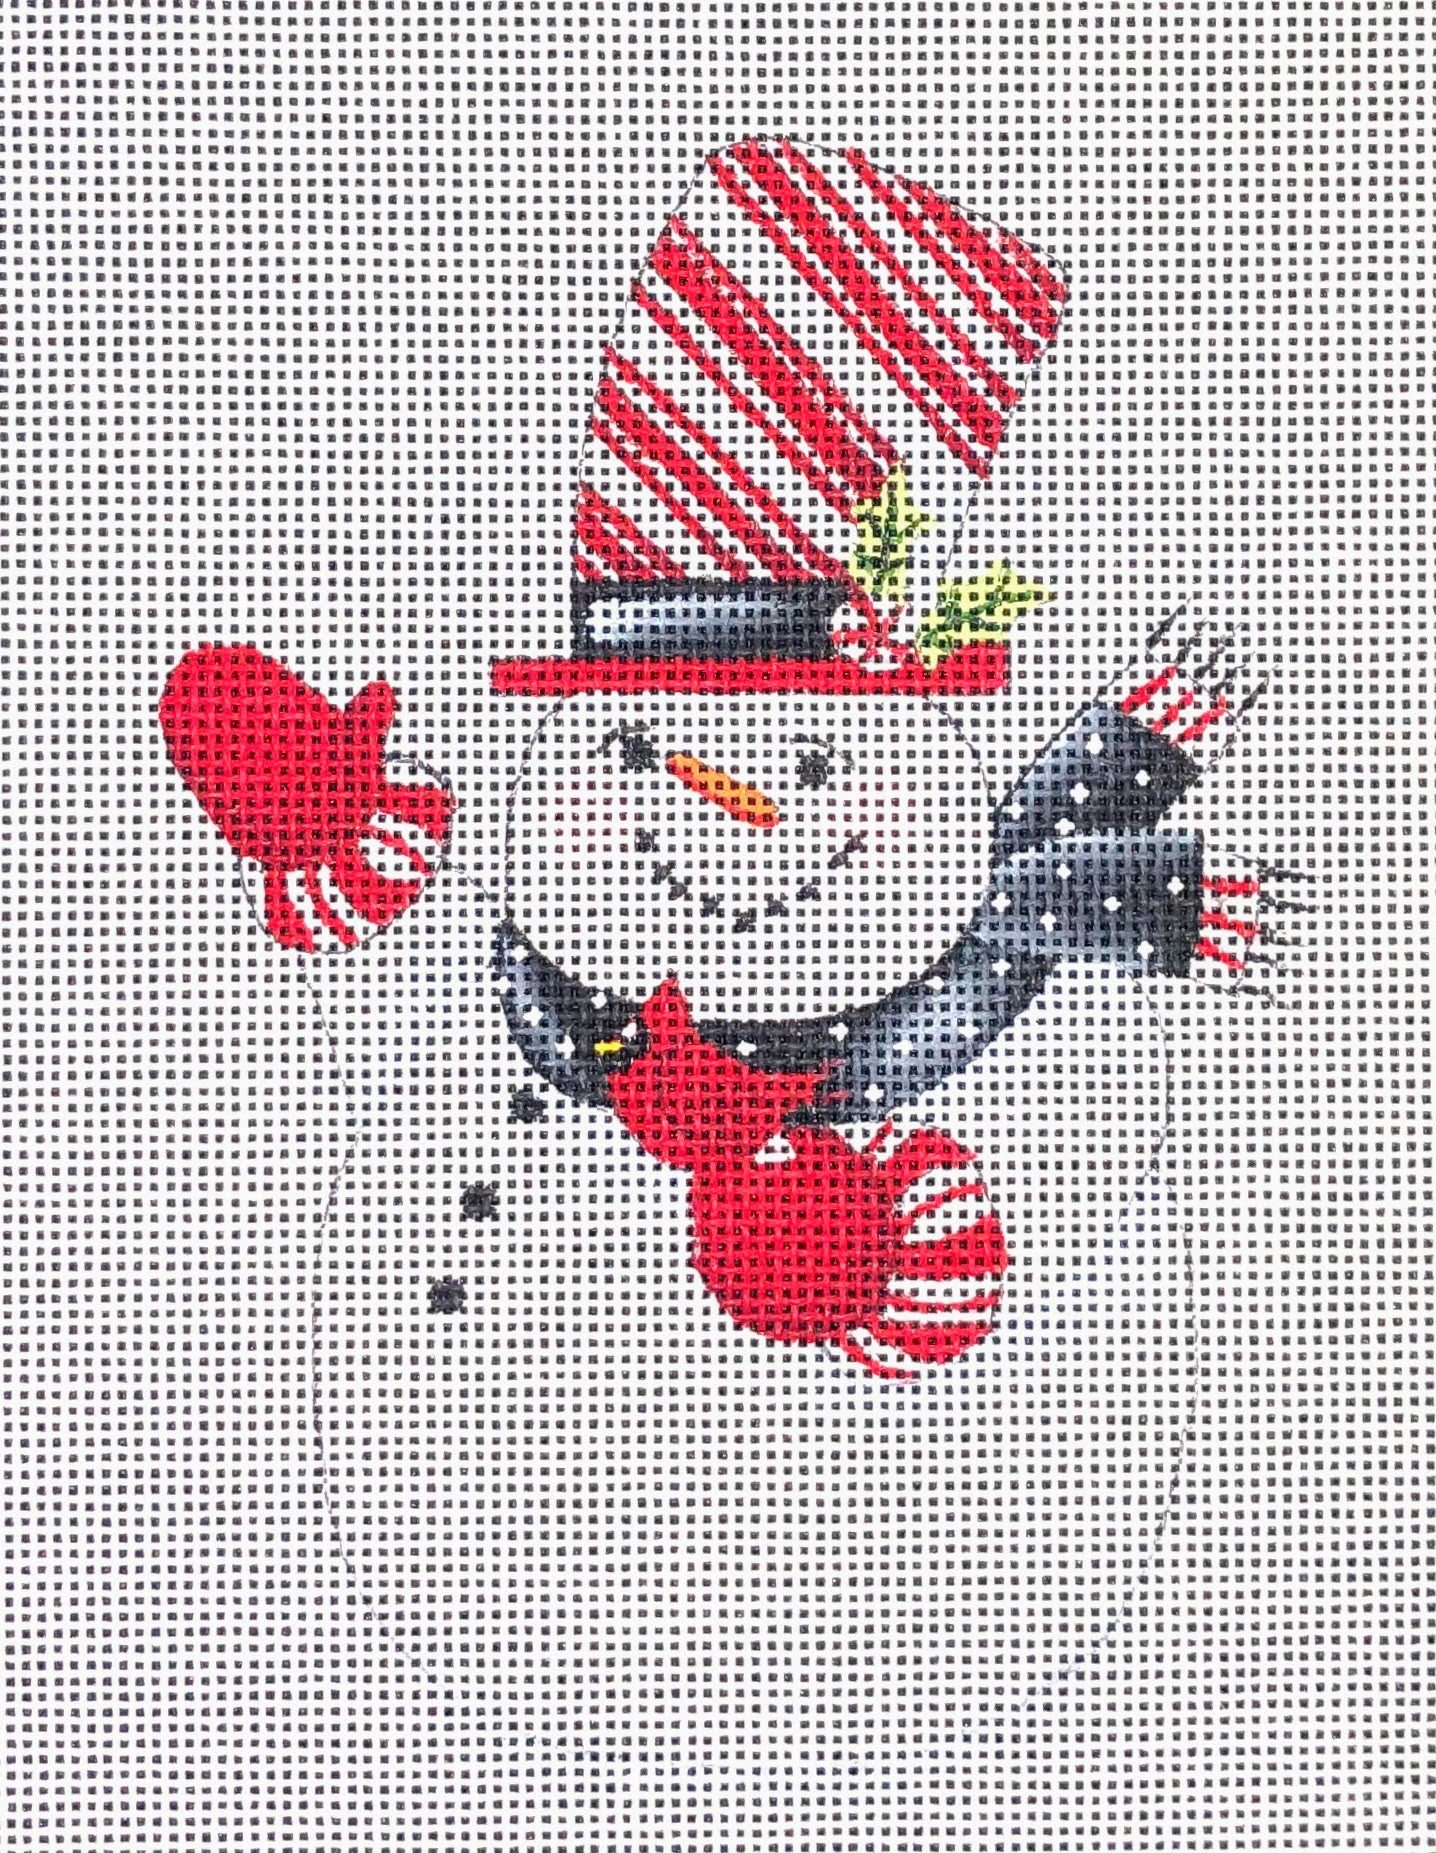 Snowman with Bird in Hand